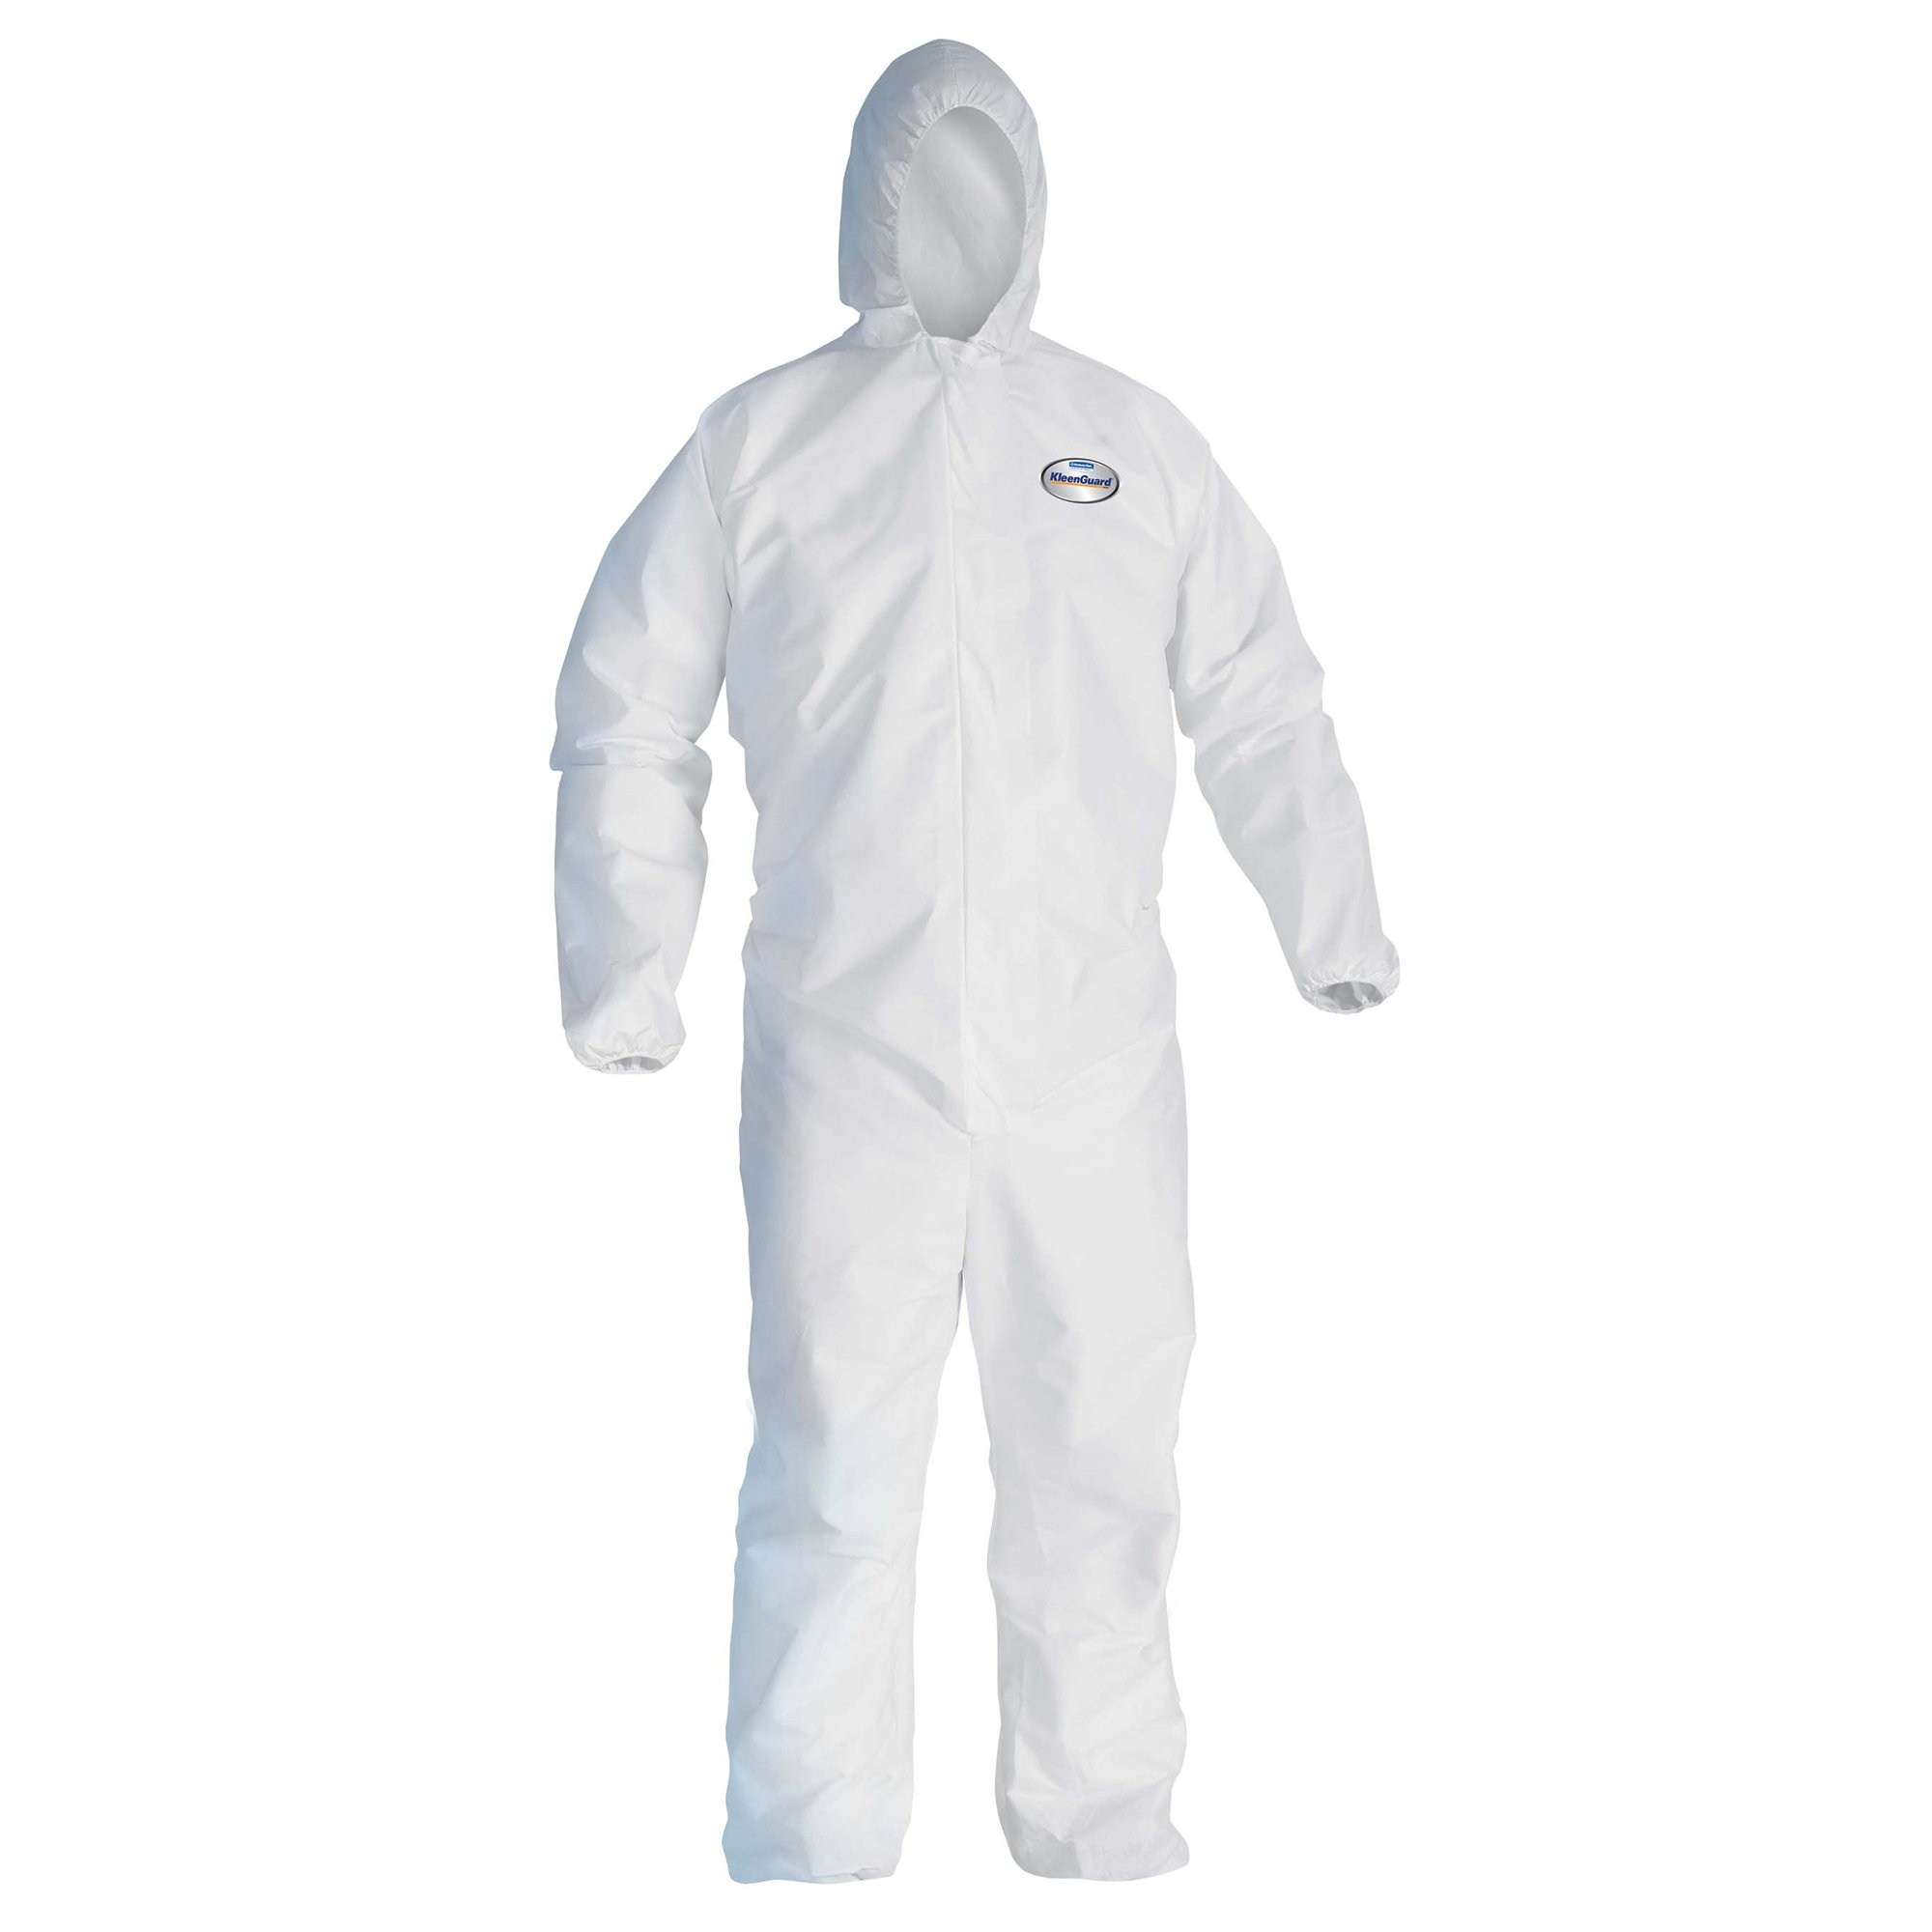 Kleenguard A30 Breathable Splash and Particle Protection Coveralls (46115), REFLEX Design, Hood, Zip Front, Elastic Wrists & Ankles (EWA), White, 2XL, 25 / Case by Kimberly-Clark Professional